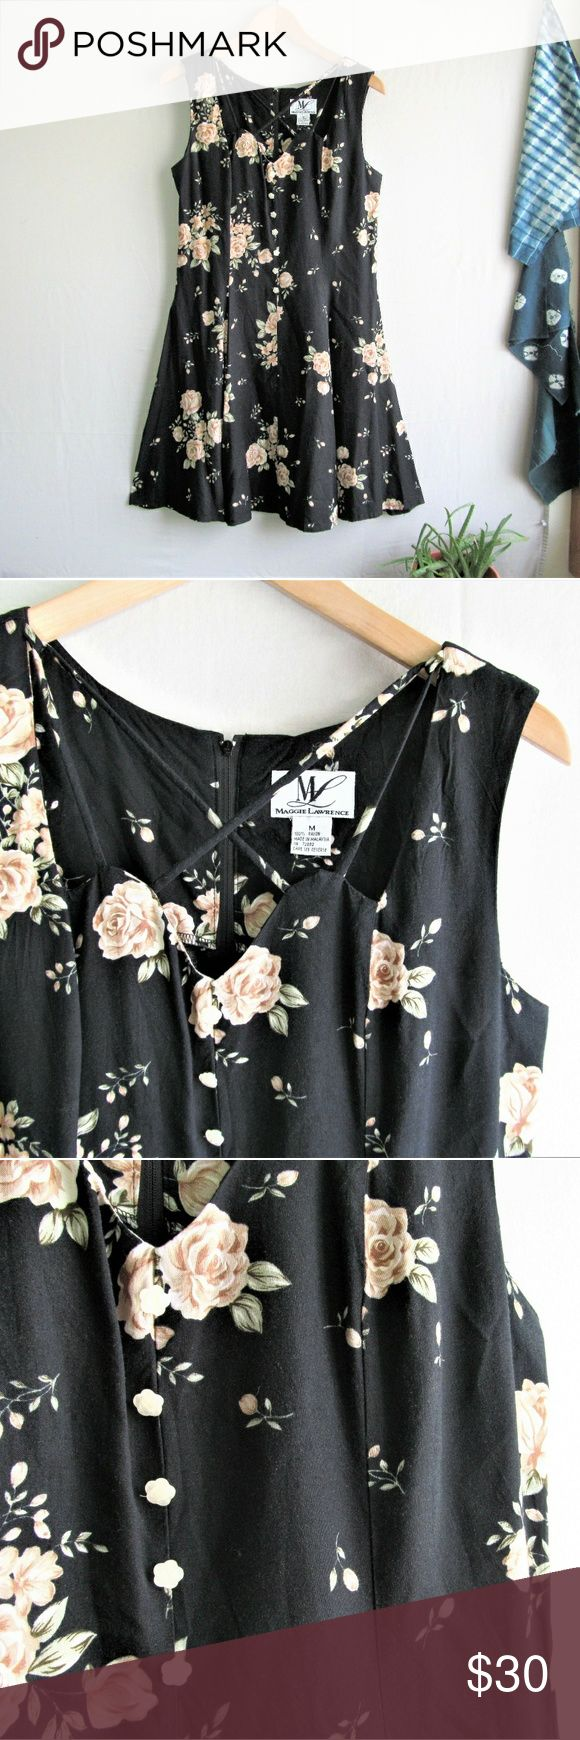 """Vintage 90s black floral strappy day dress Vintage 90s floral dress with strappy neck detailing and sweet little flower buttons down the front. Fitted silhouette, center back zip, 100% rayon. Euc, some slight weave distortion shown in picture 4. Not noticeable when worn♡ size medium  Measurements taken flat  Pit to pit 19"""" Waist 16.5"""" Length from shoulder 35"""" Vintage Dresses"""